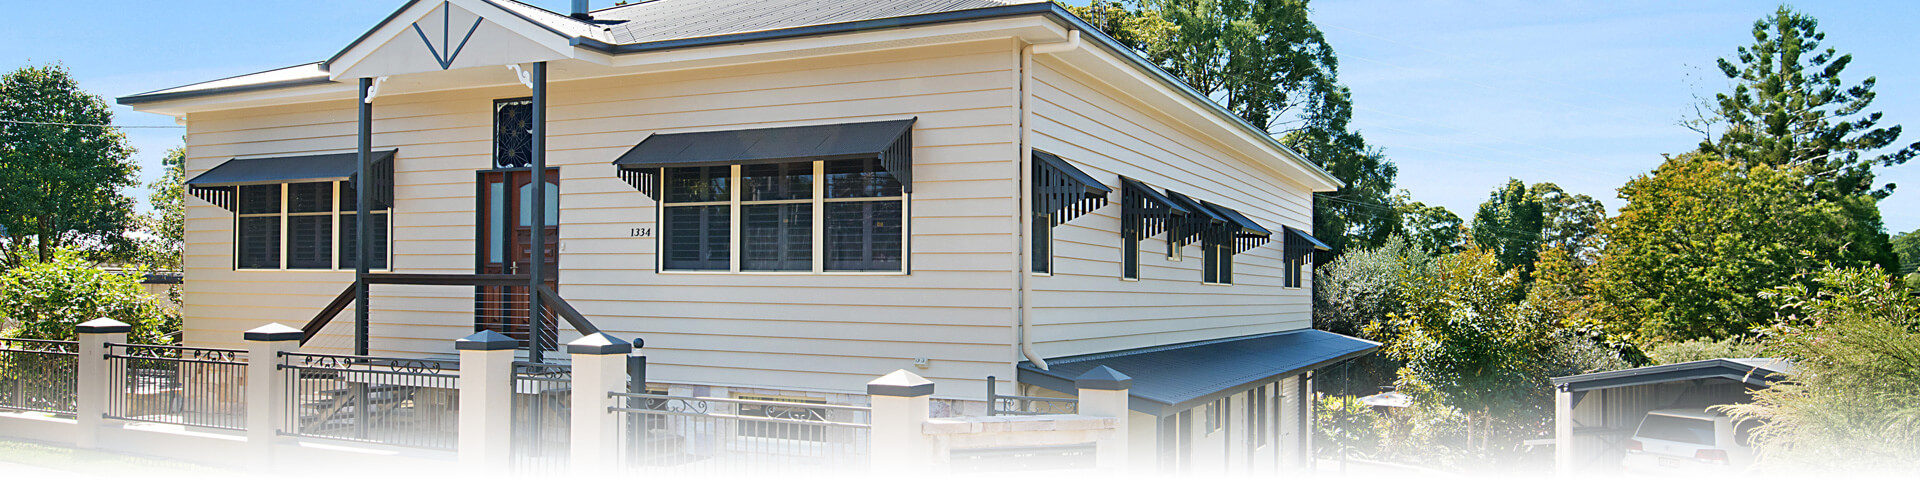 The Guesthouse from Landsborough-Maleny Road